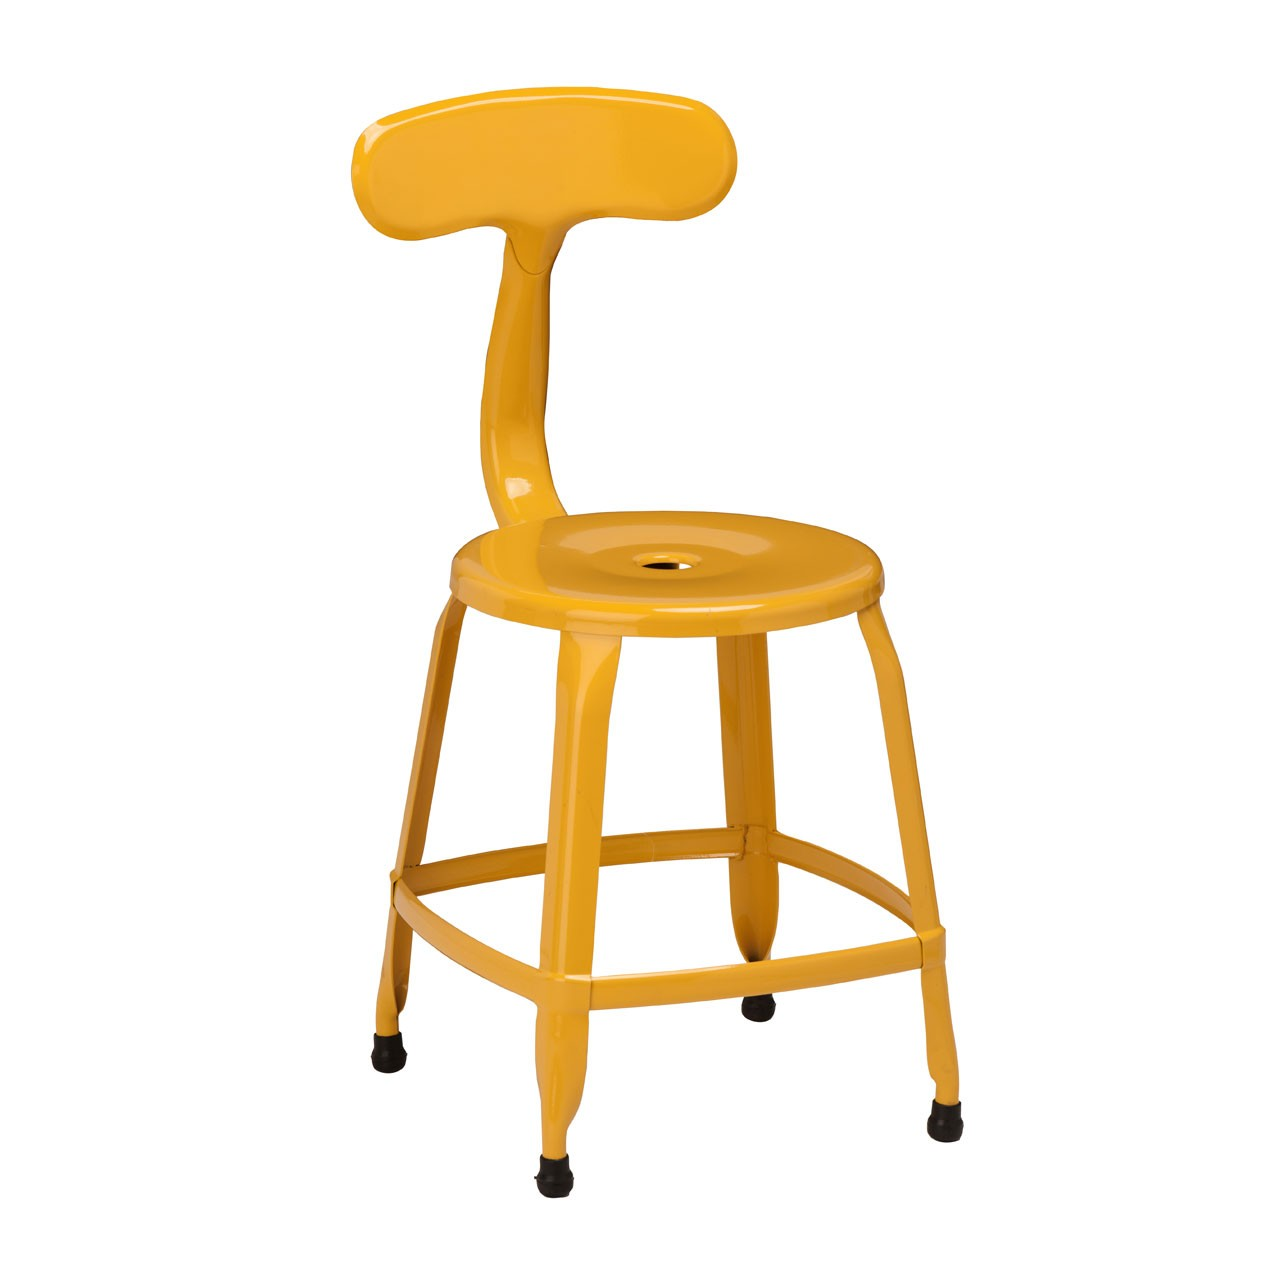 4 x Disc Chair Yellow Powder Coated Metal